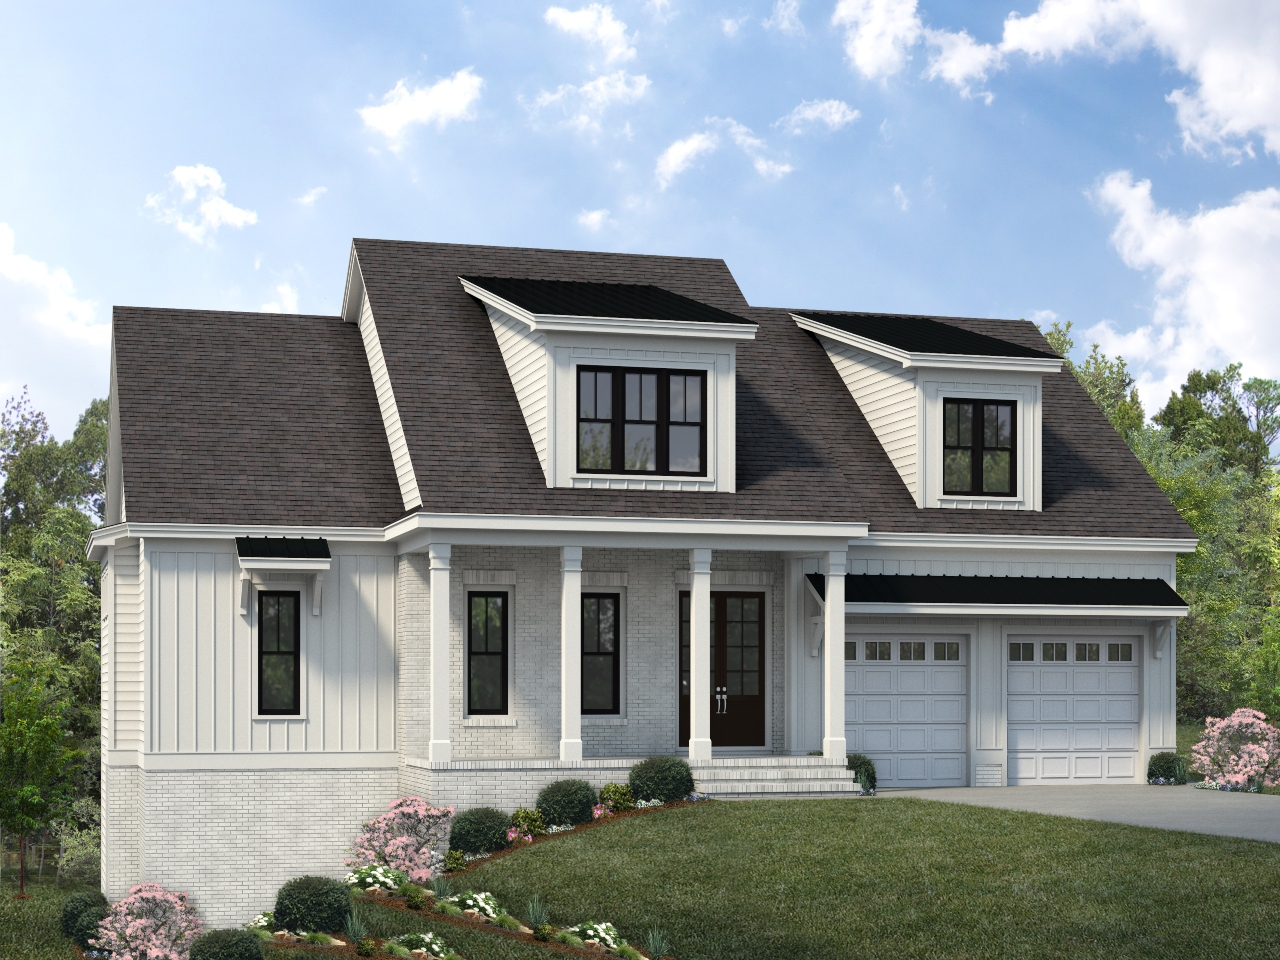 193 Cottage Way (Lot 14)